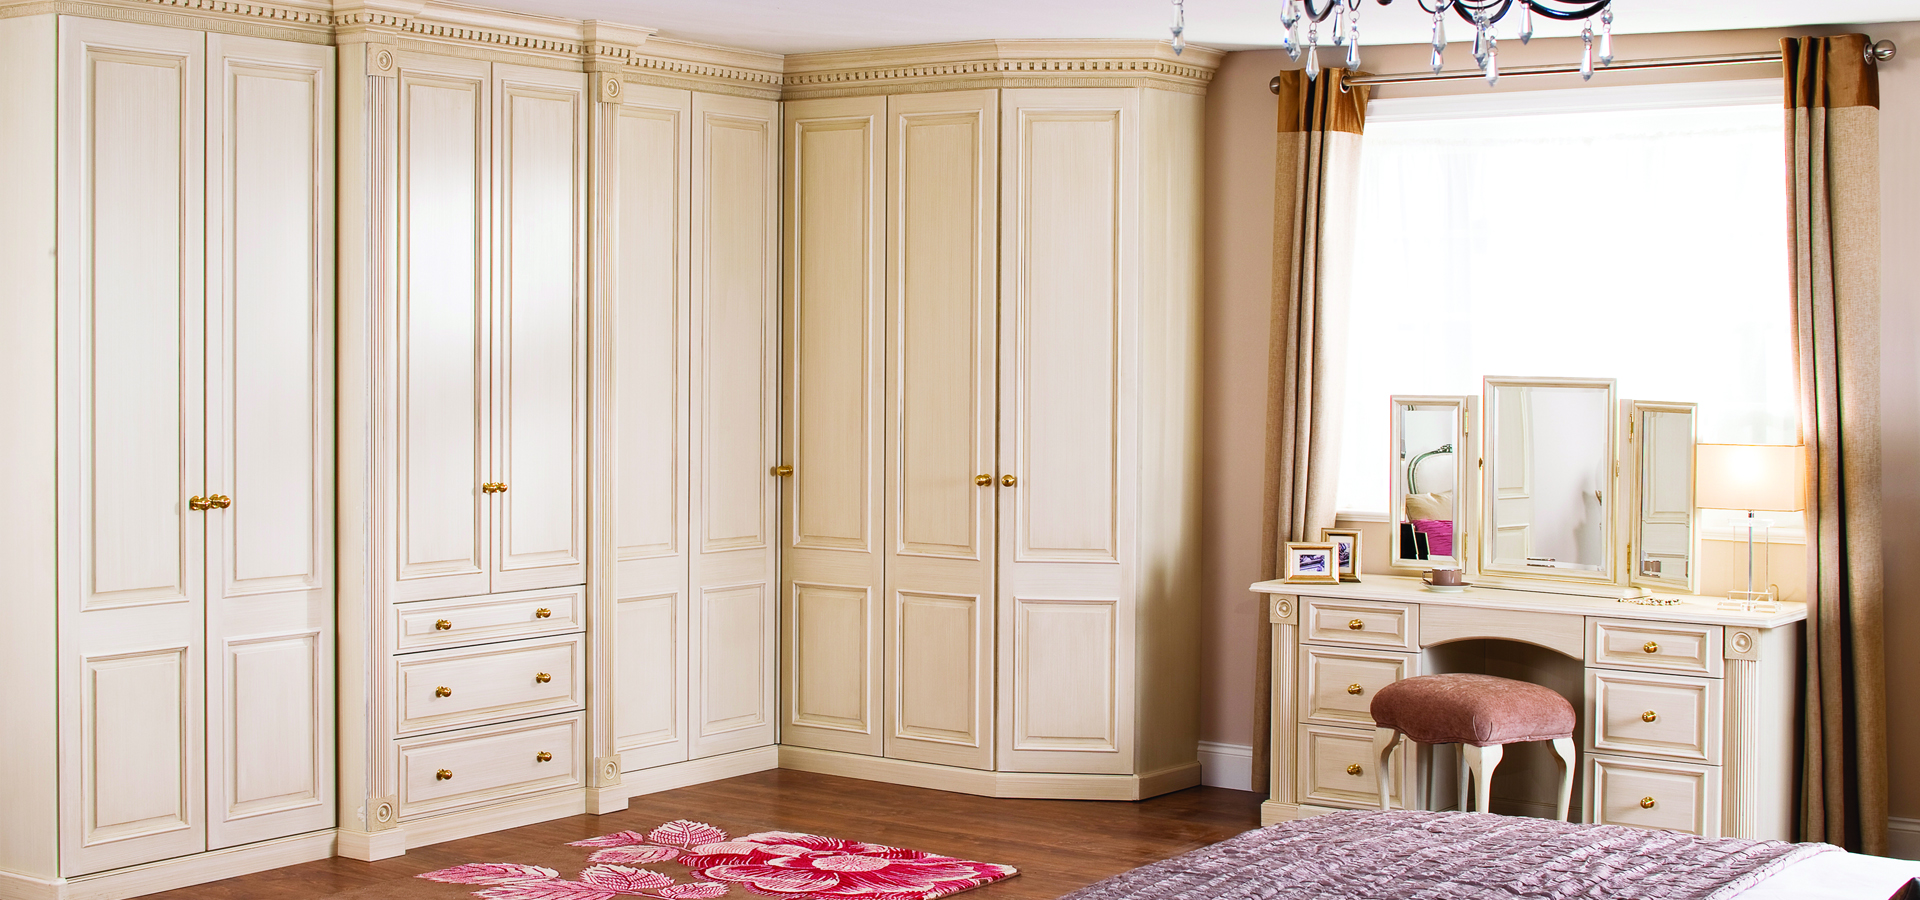 bedroom wardrobe systems uk sliding wardrobes doors 14668 | 10